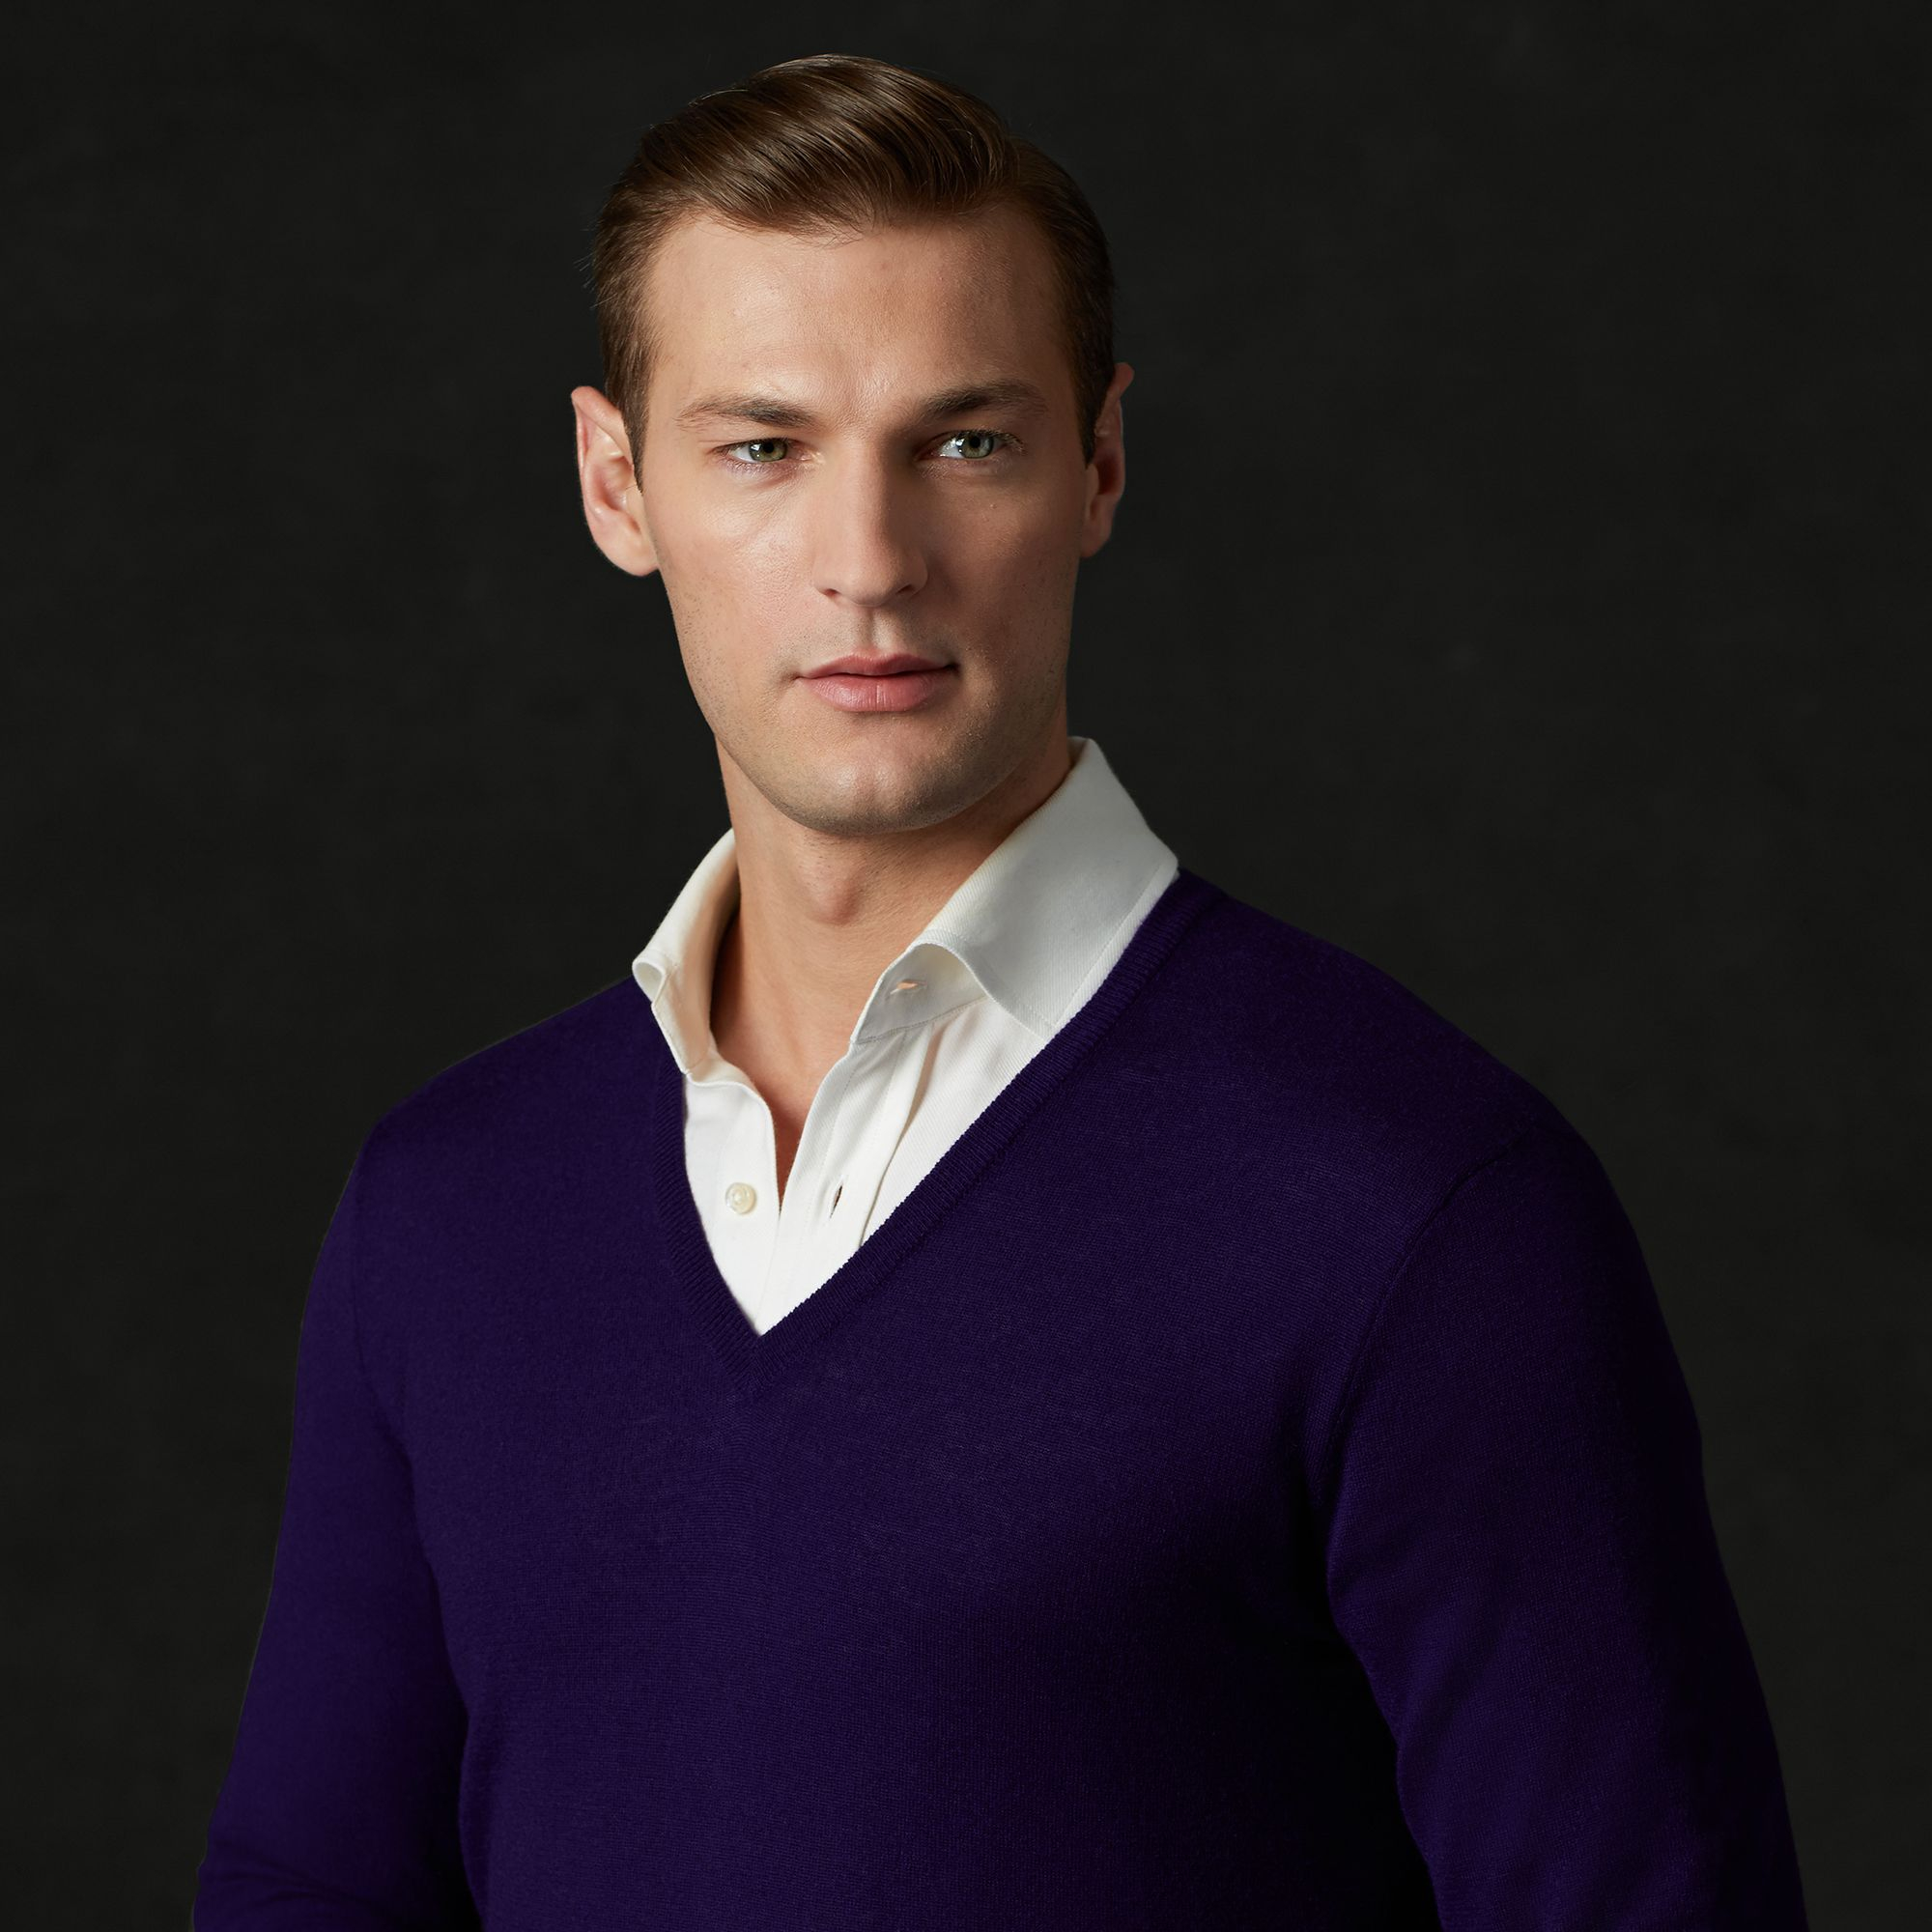 ralph lauren purple label sweater